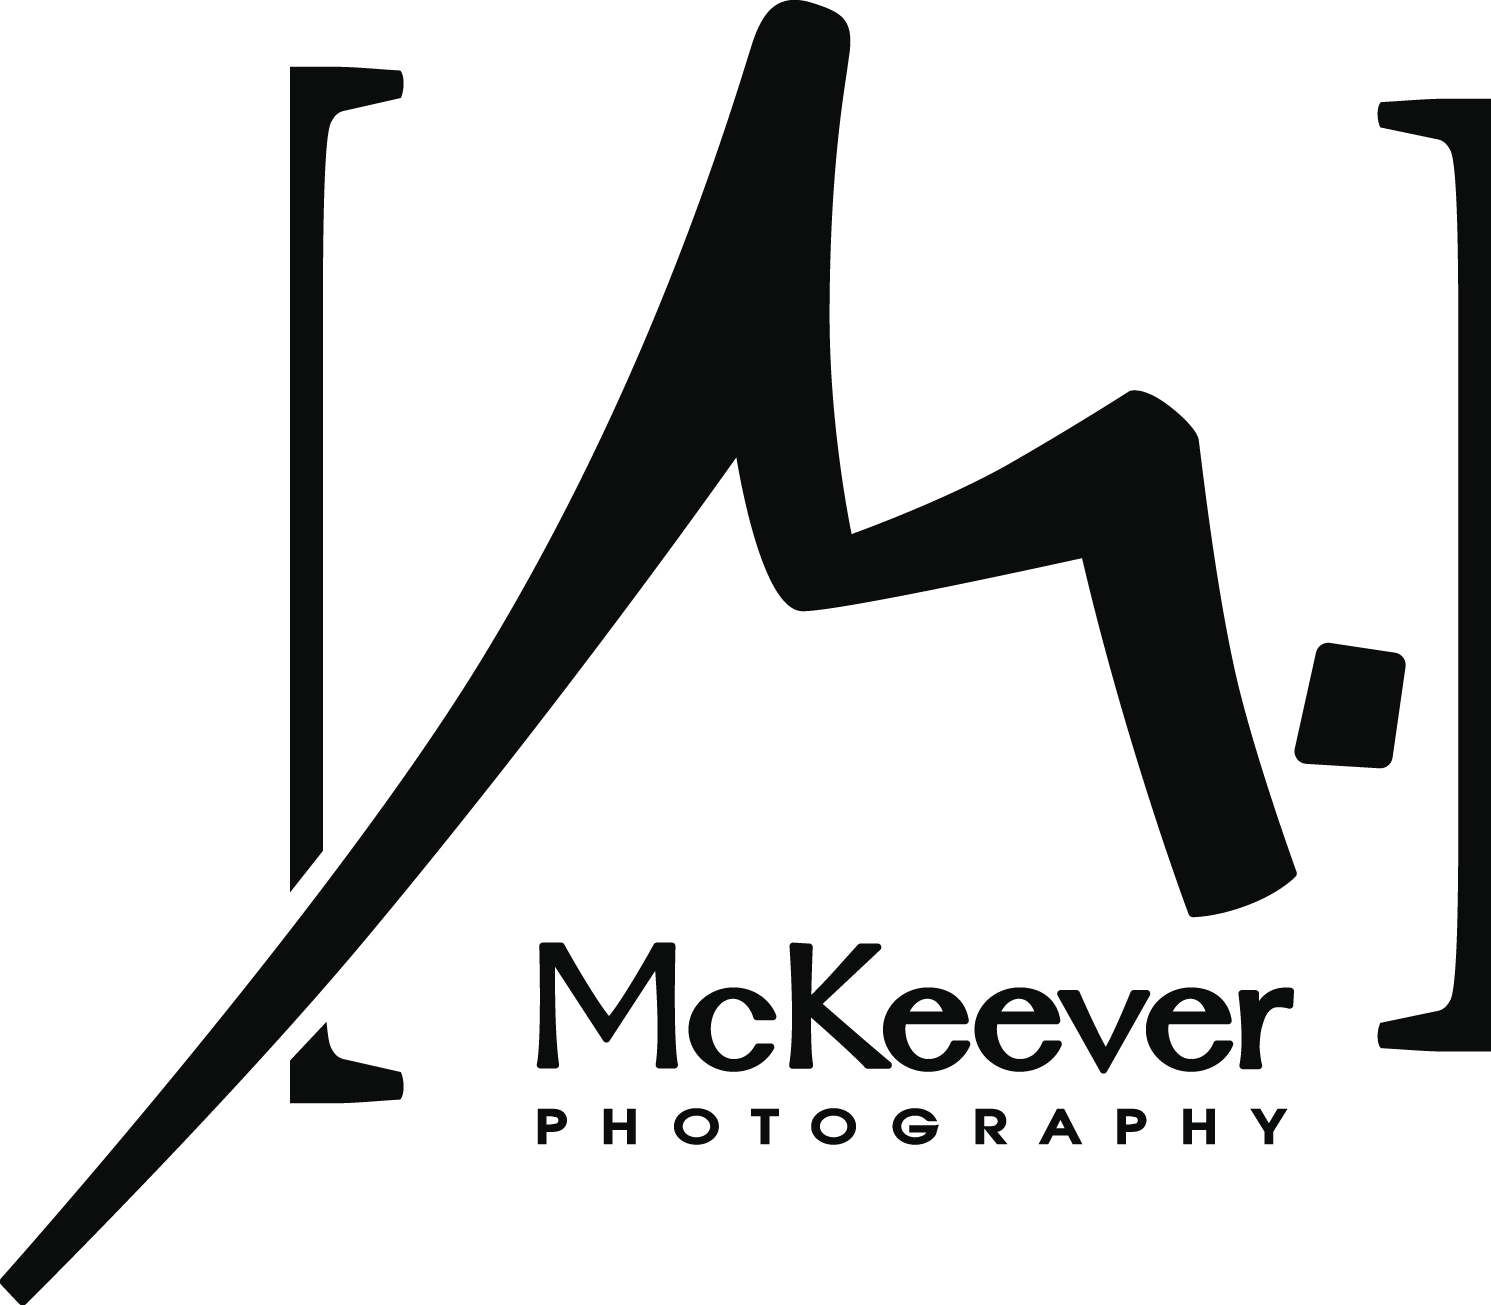 McKeever Photography